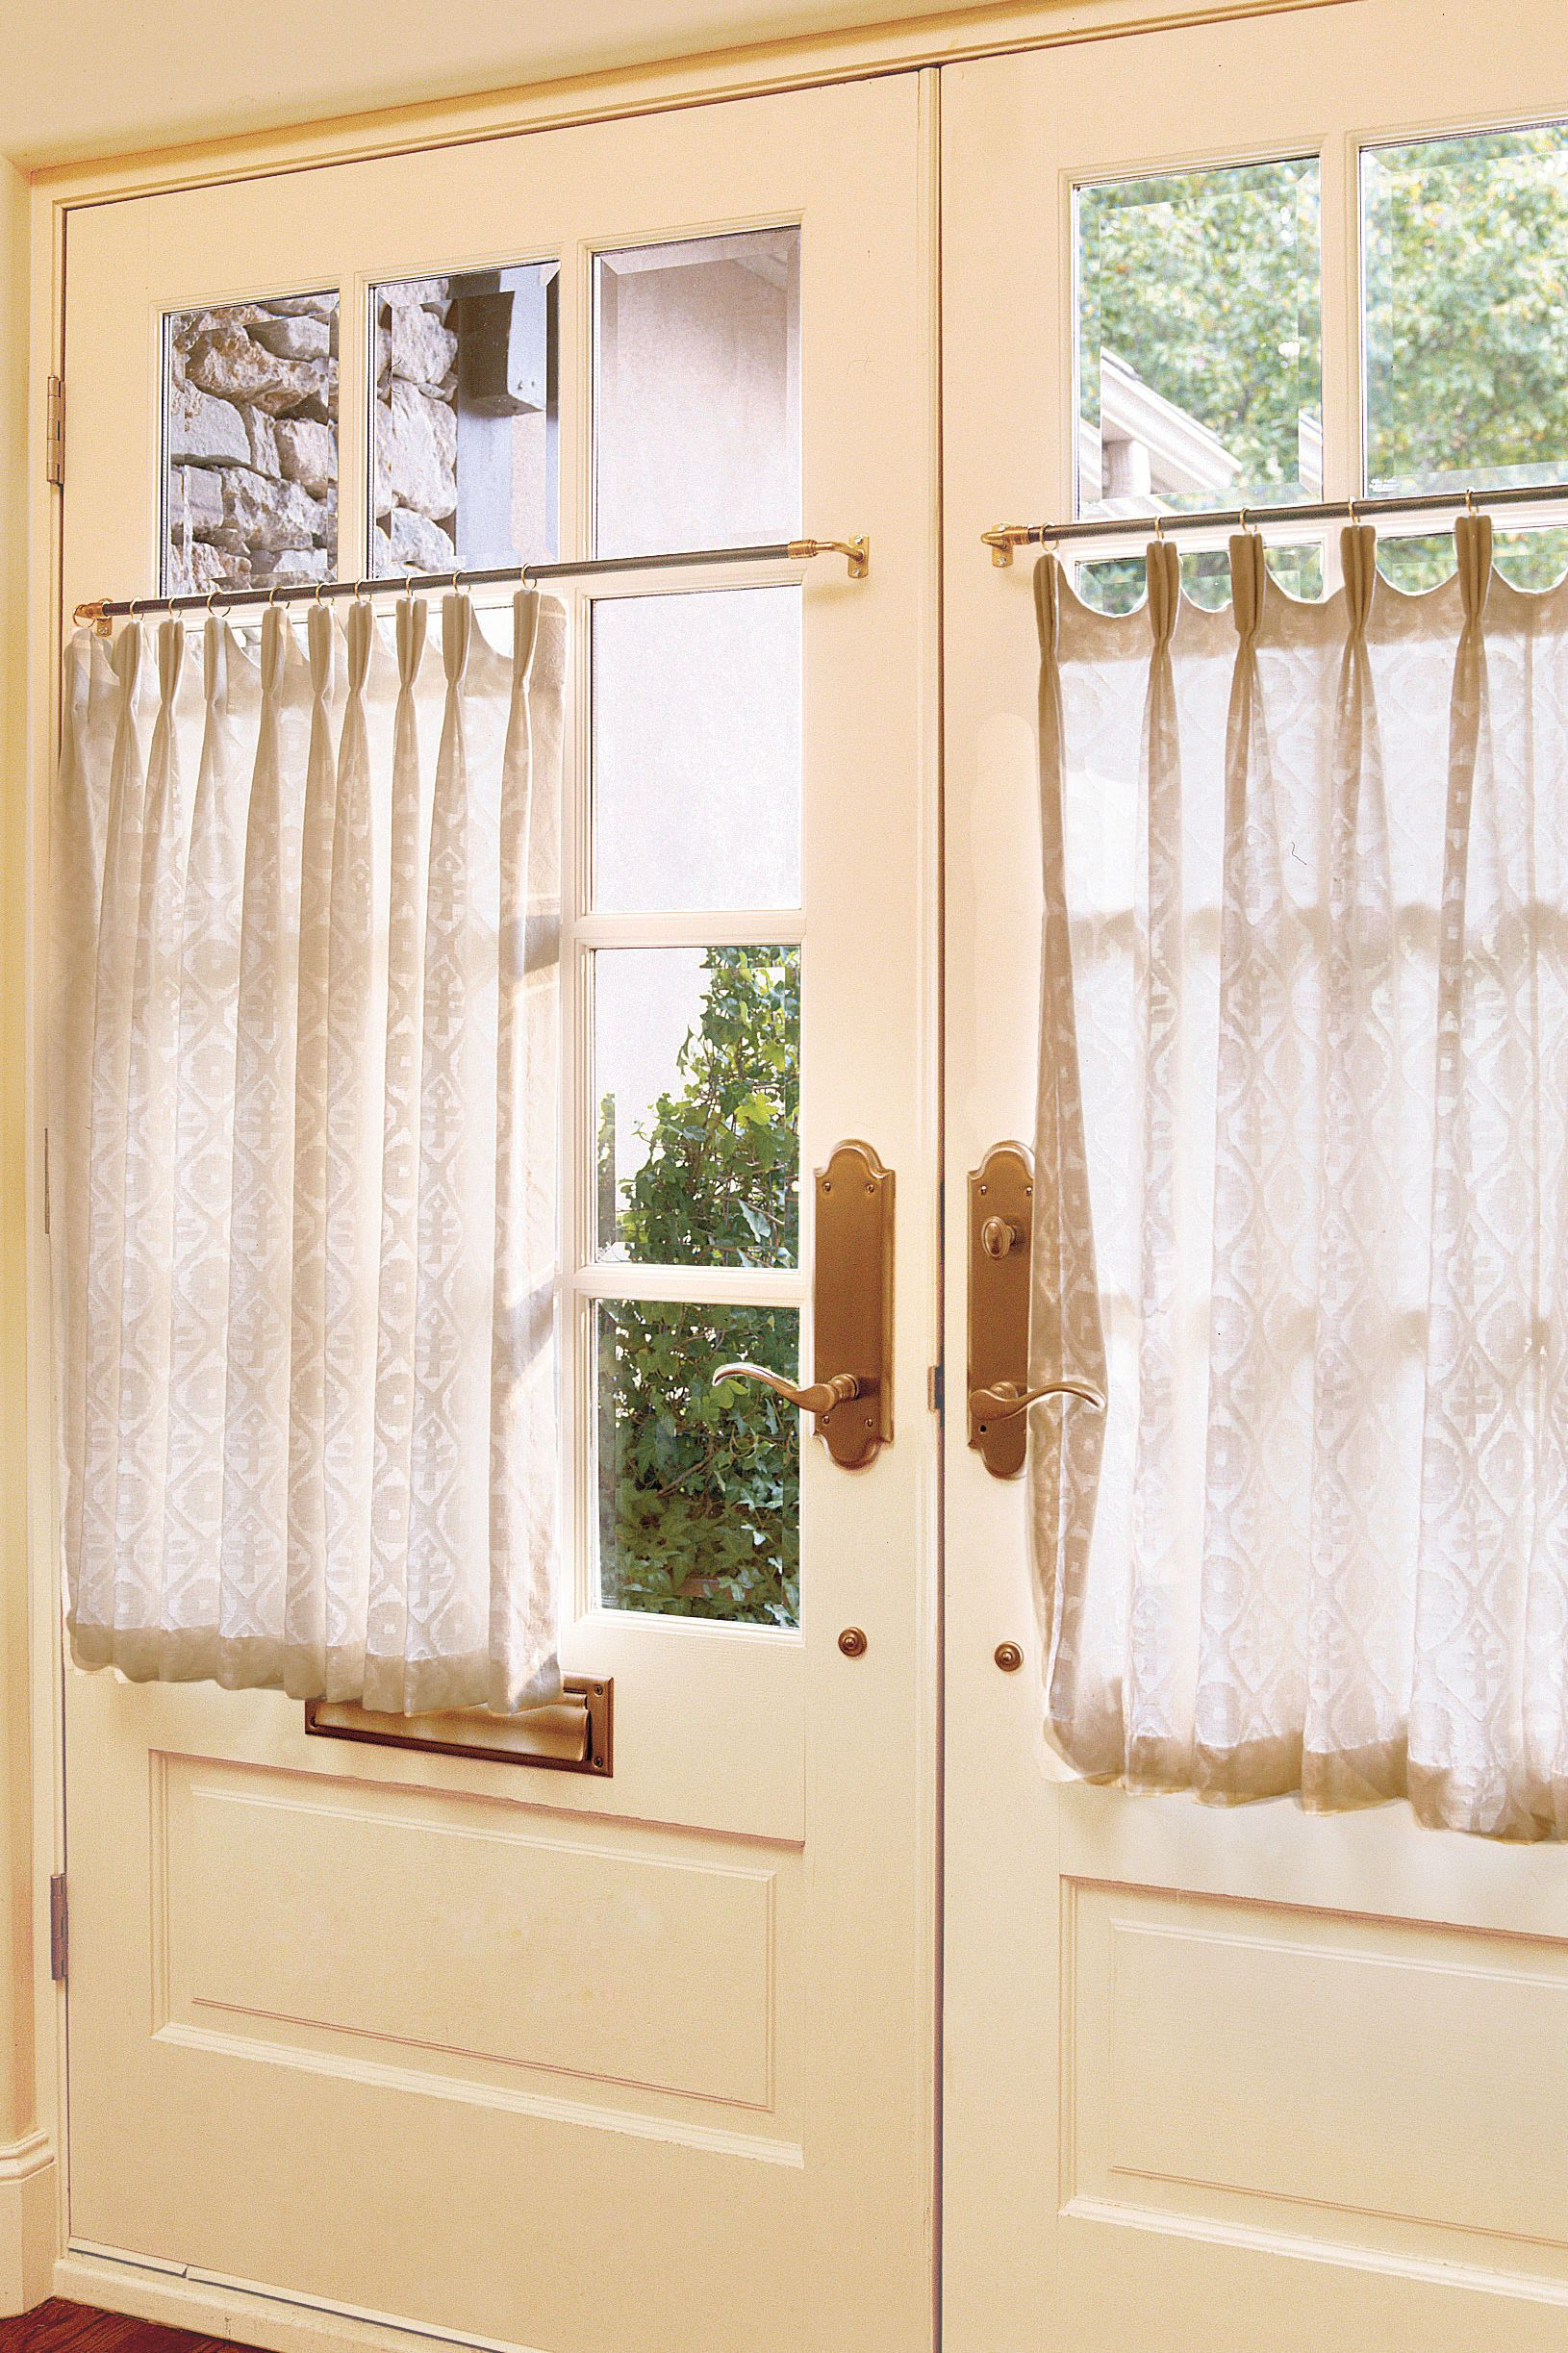 Simply Dressed Cafe Curtains Sheers Curtains Living Room Cafe Curtains Kitchen Home Sheer cafe curtains for living room